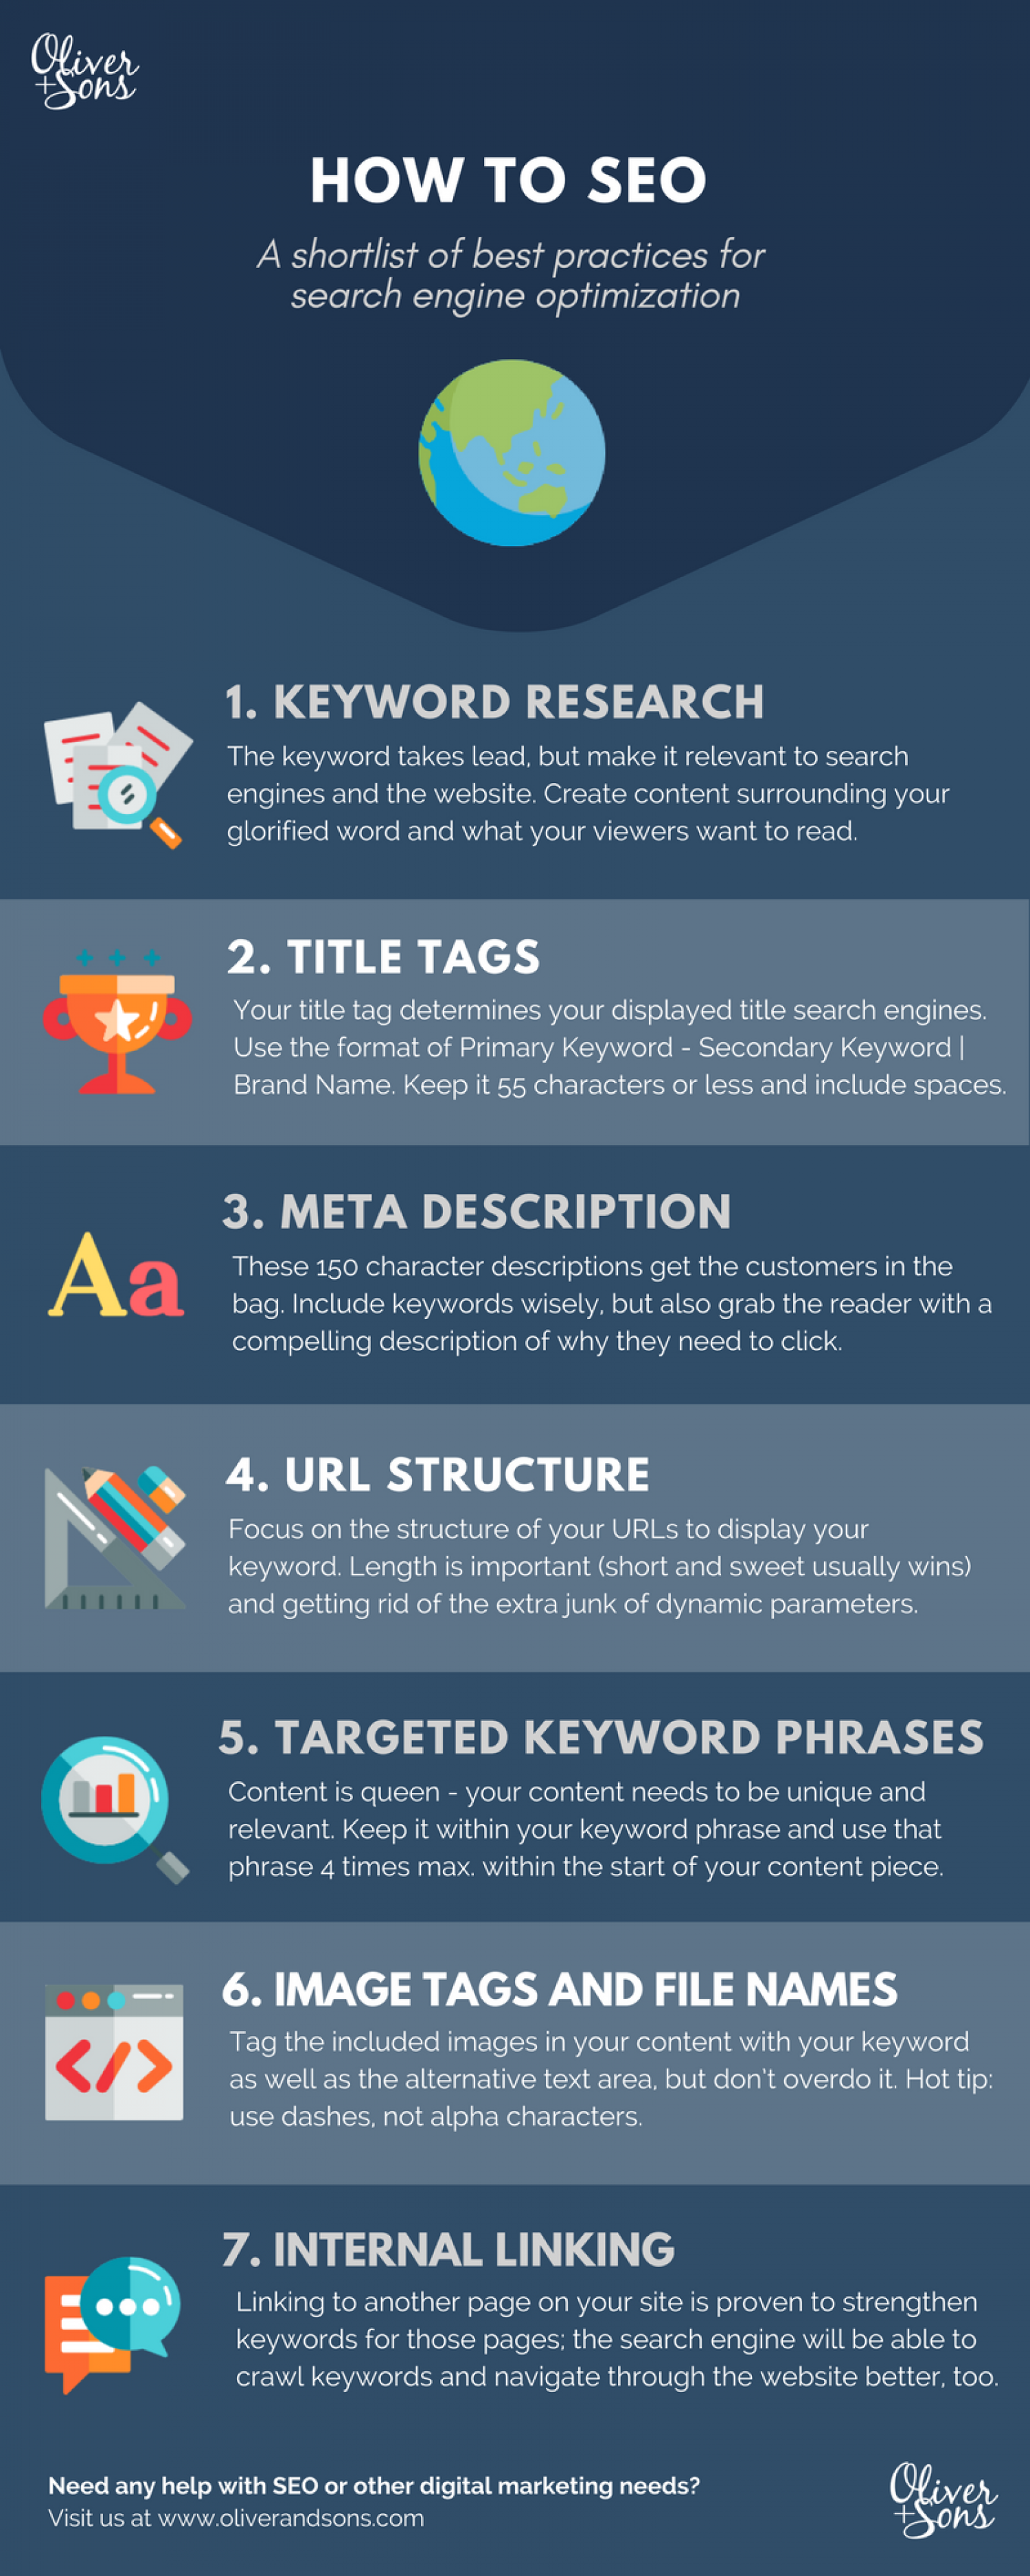 How to SEO: Search Engine Optimization Best Practices Checklist Infographic